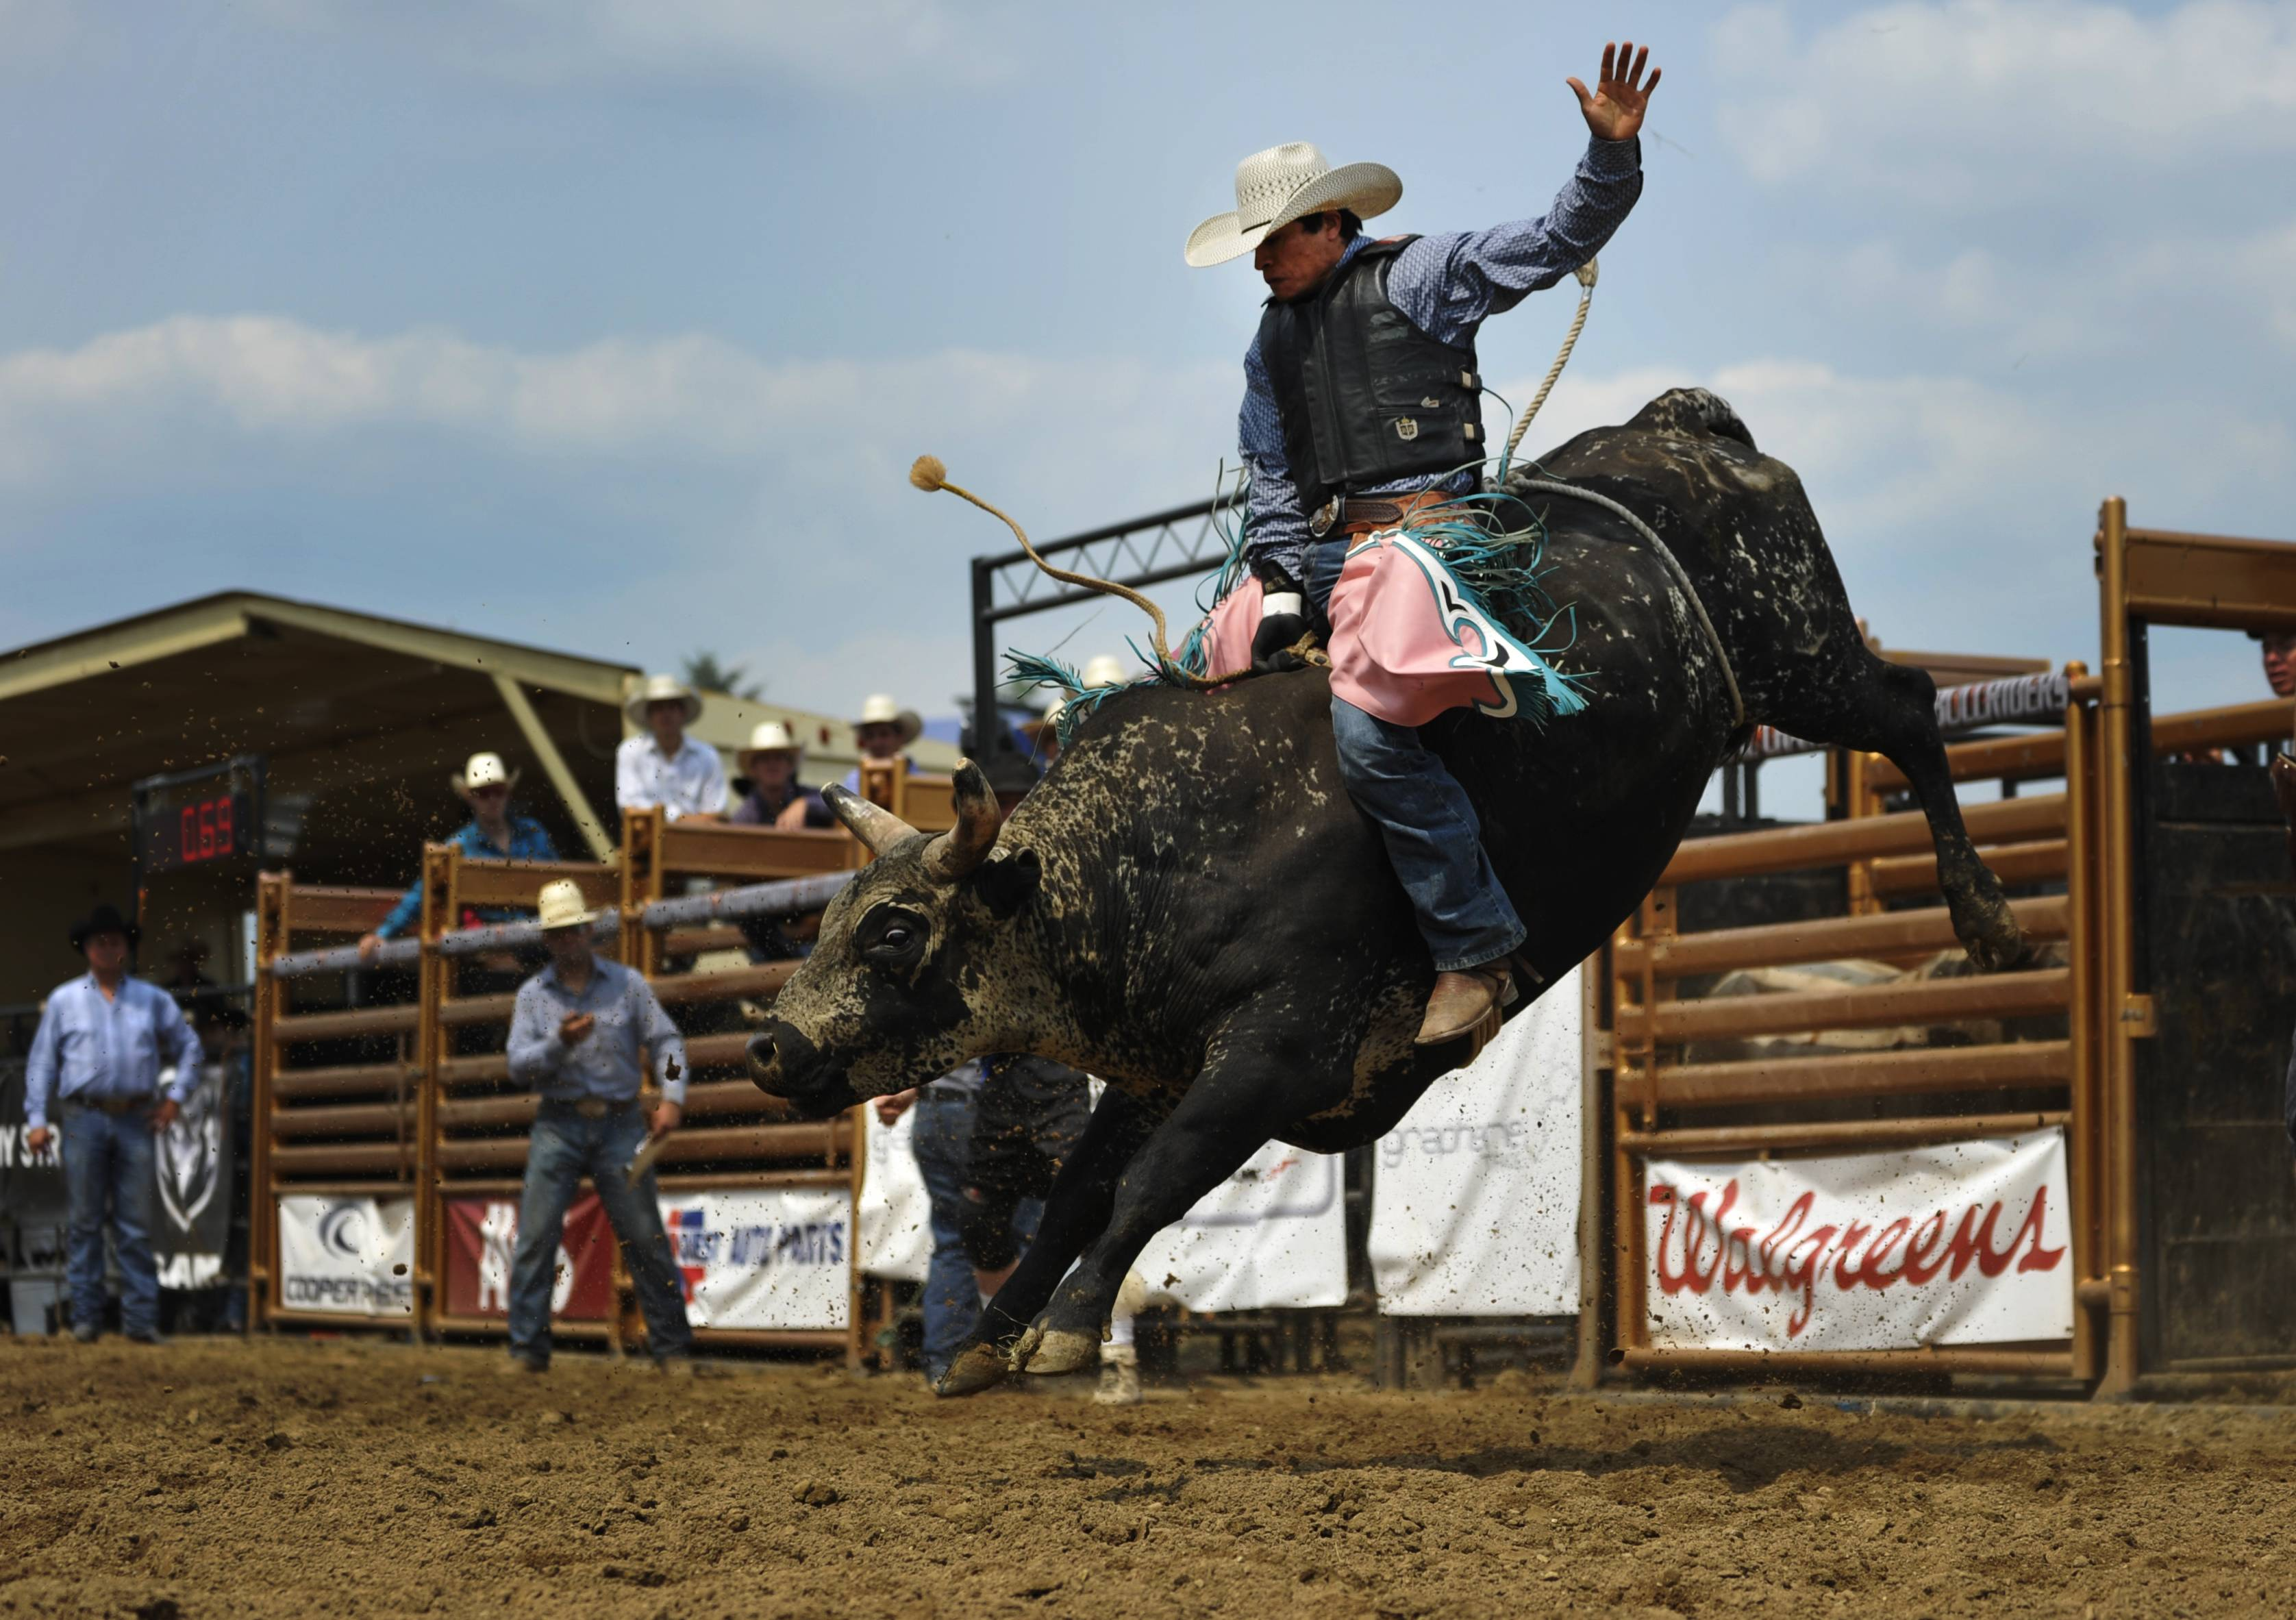 Sergio Gonzales of Guatemala manages to stay on the bull at the Kane County Fair Saturday afternoon. The third round in the competition was Saturday night.